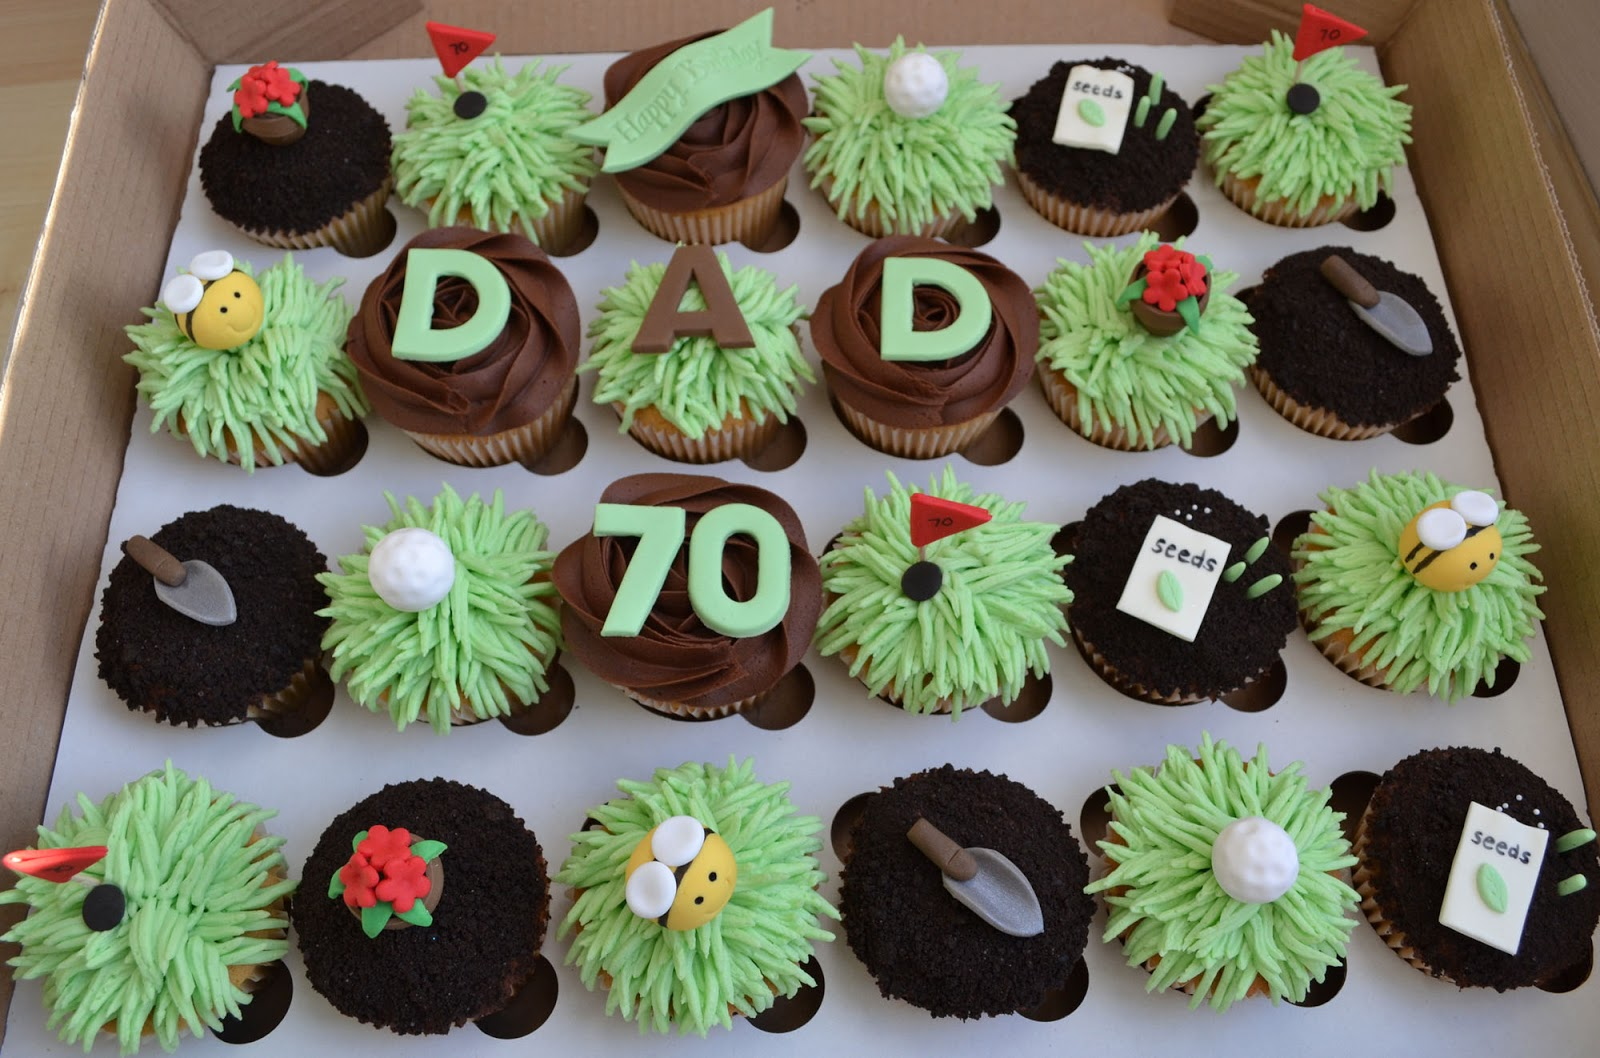 little paper cakes happy 70th birthday dad golf and gardening cupcakes